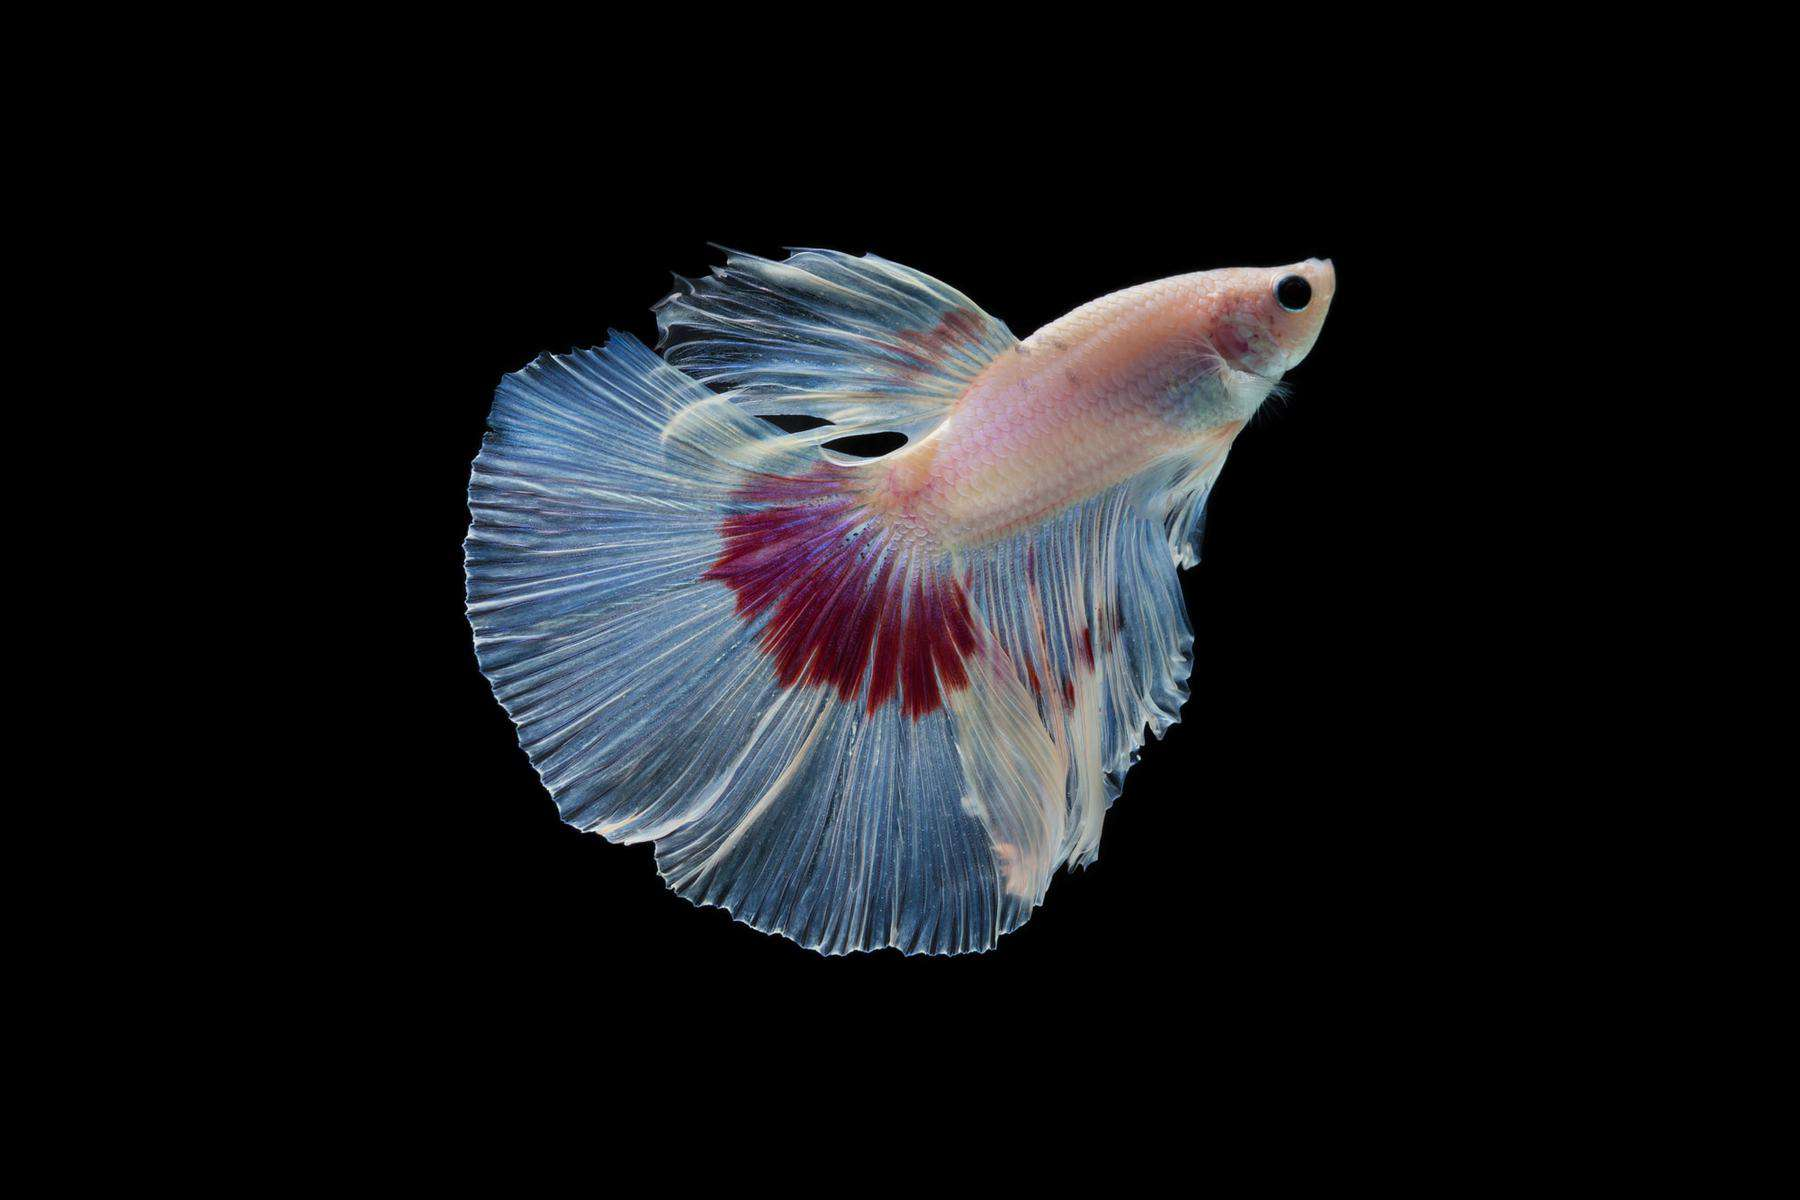 constipated betta fish in black background